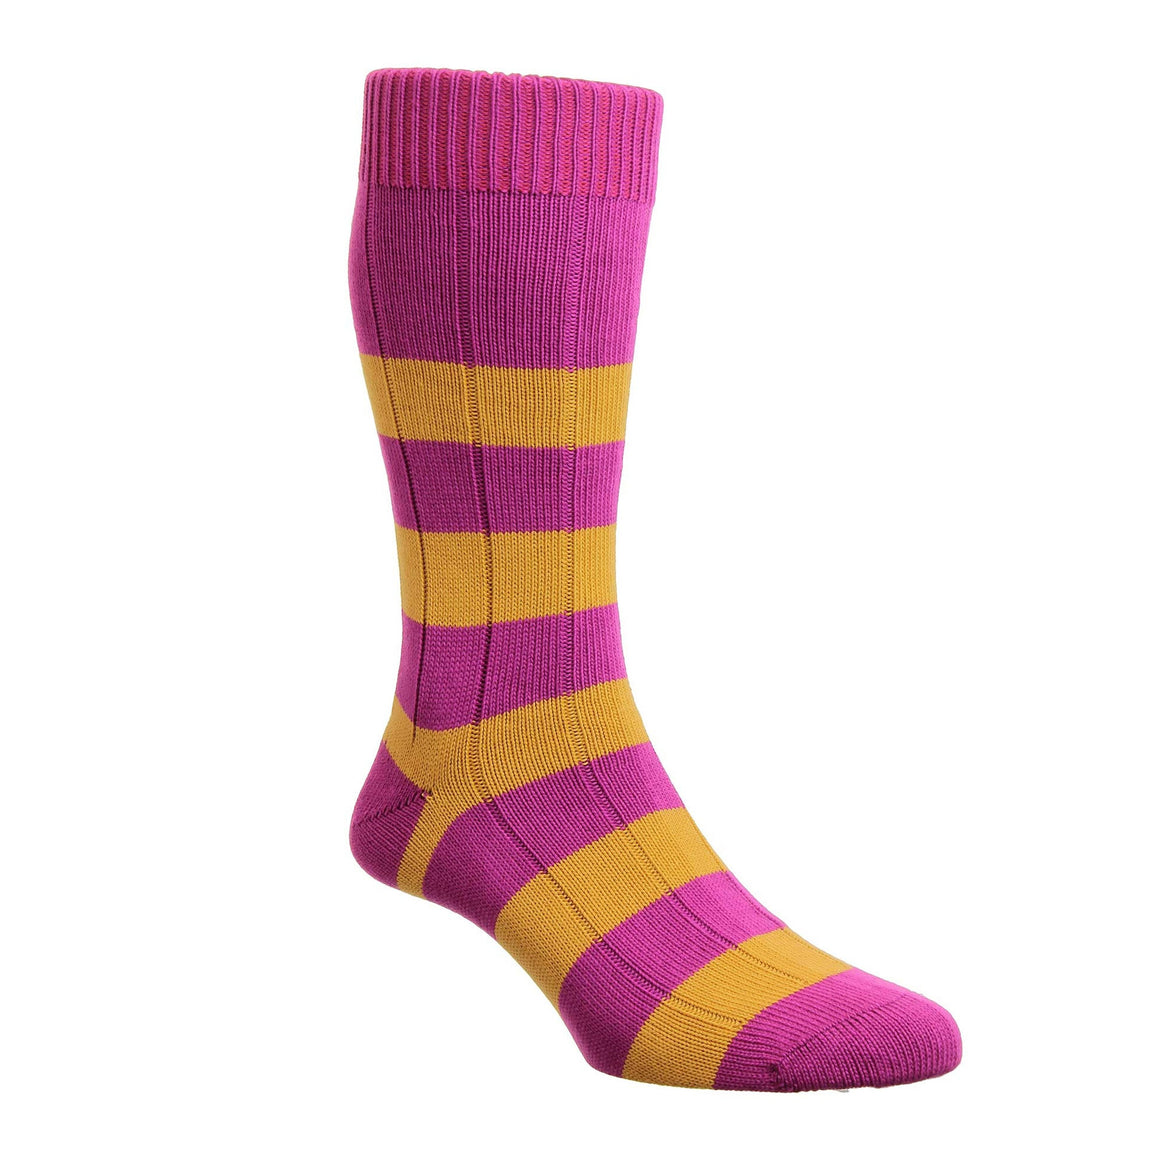 Rugby Stripe Socks for Men in Orchid & Yellow